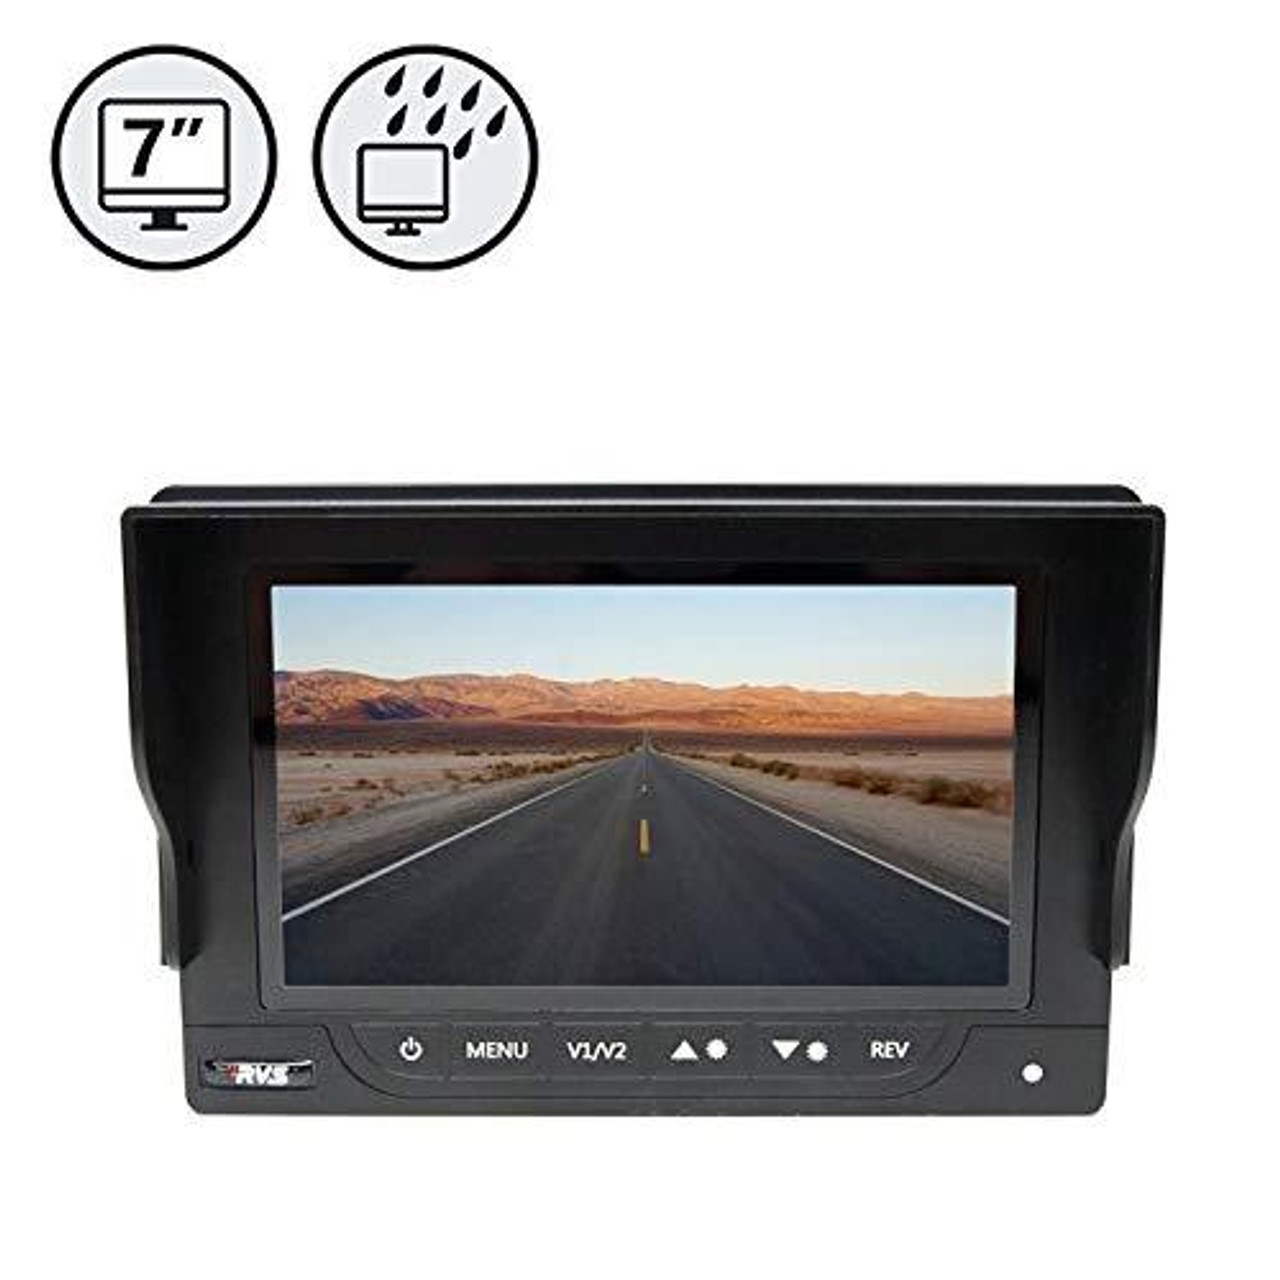 "7"" Waterproof Rear View Monitor"